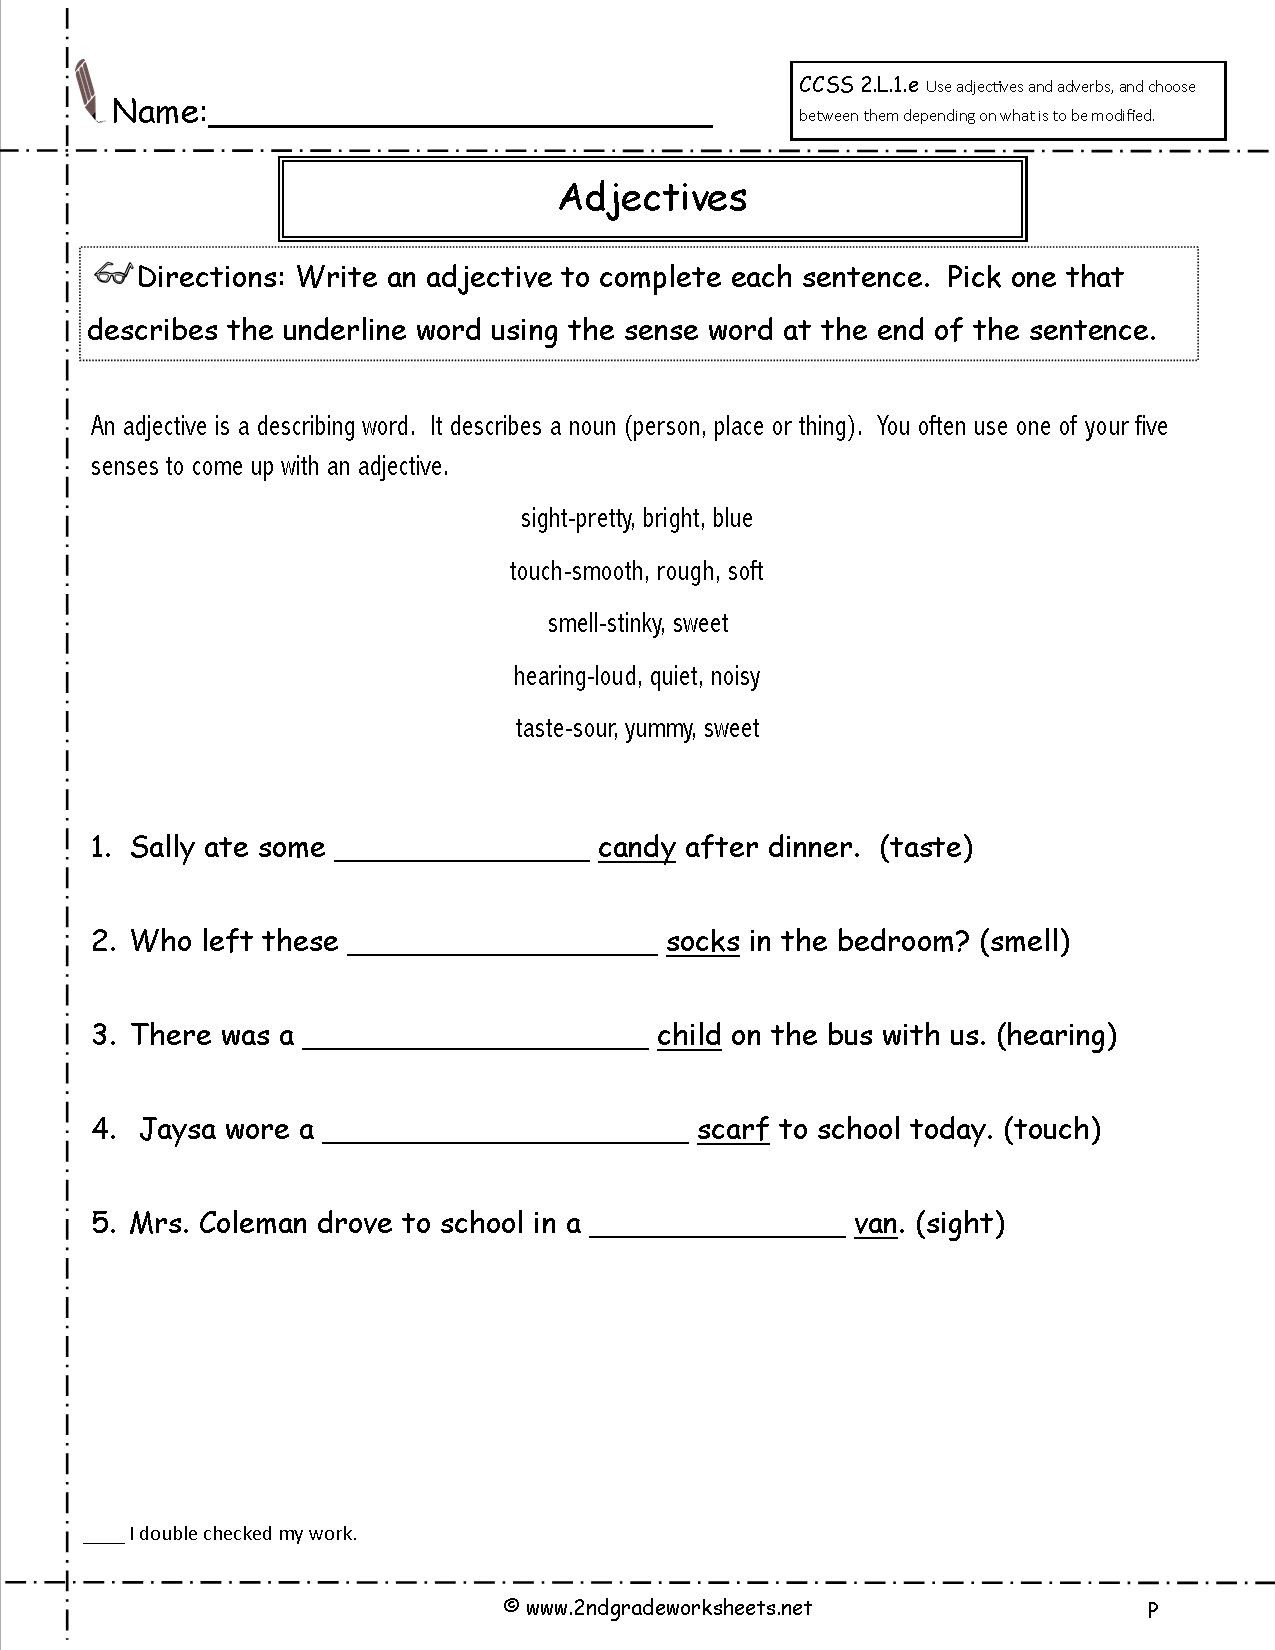 Adjectives Worksheets 3rd Grade Math topics by Grade Birthday themed Coloring Pages